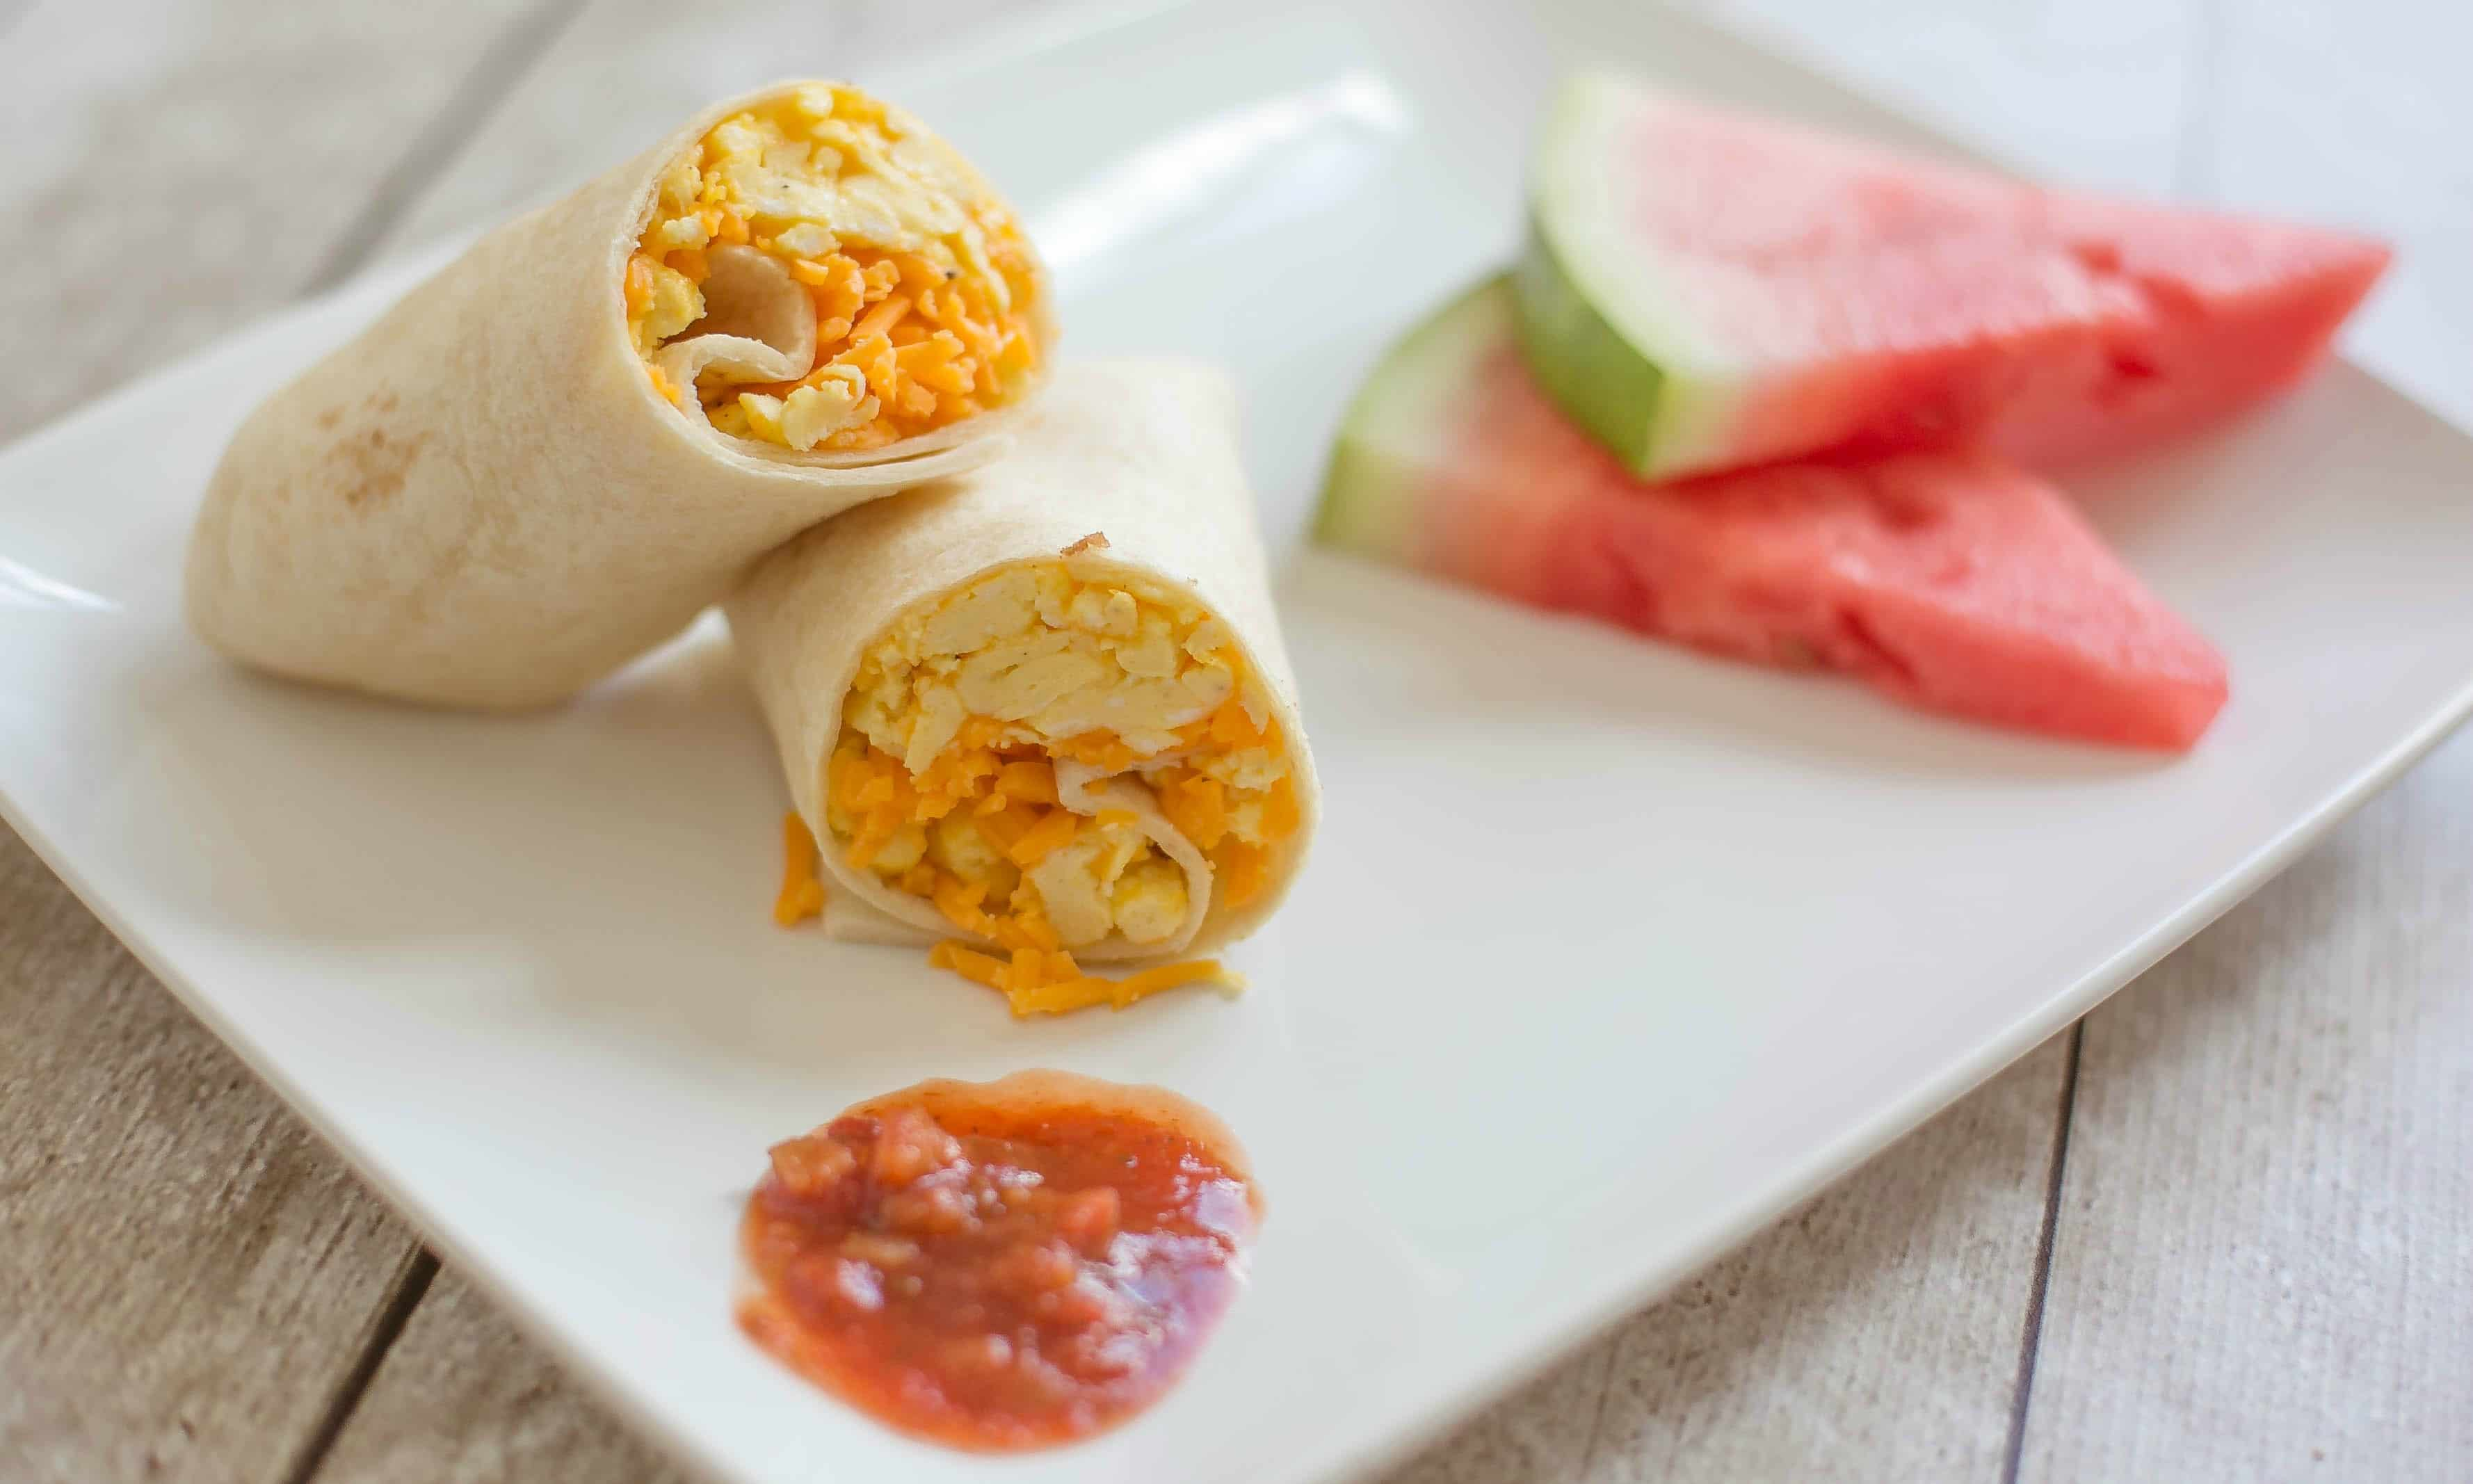 These make-ahead burritos can be frozen for a quick and easy on-the-go breakfast